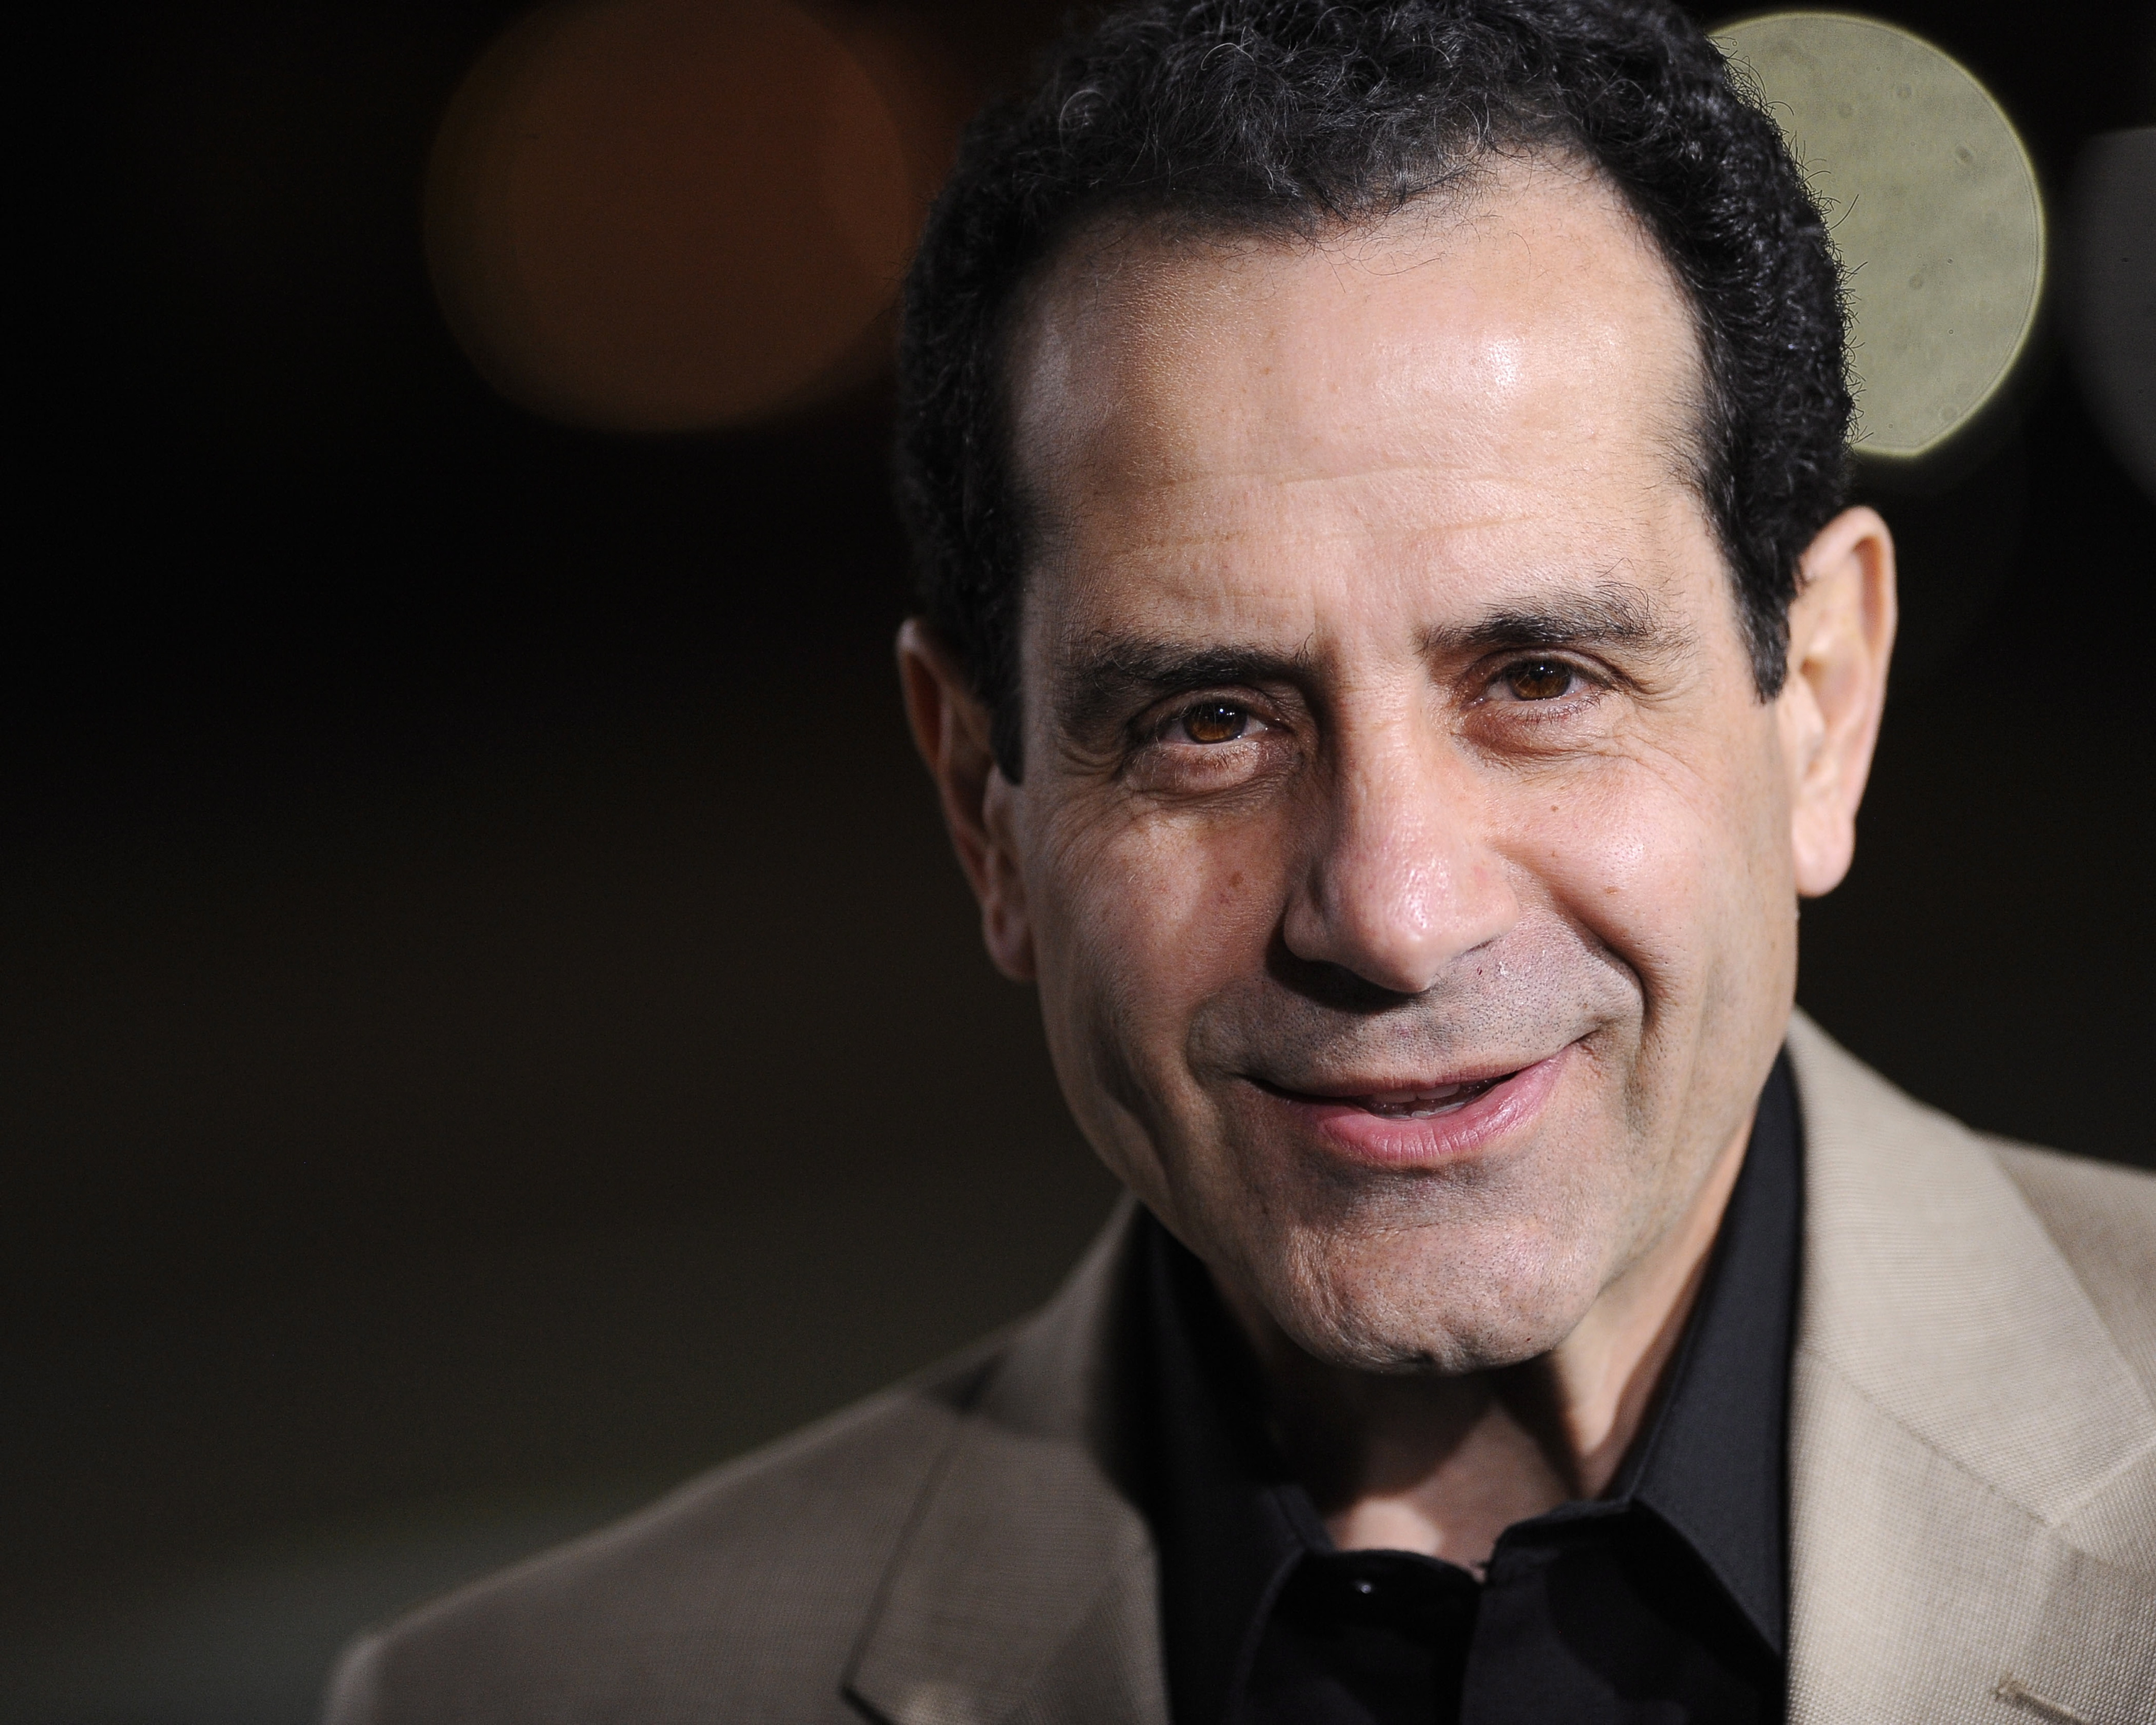 epa02551292 US actor Tony Shalhoub arrives for the world premiere of 'The Rite' in Hollywood, California, USA 26 January 2011